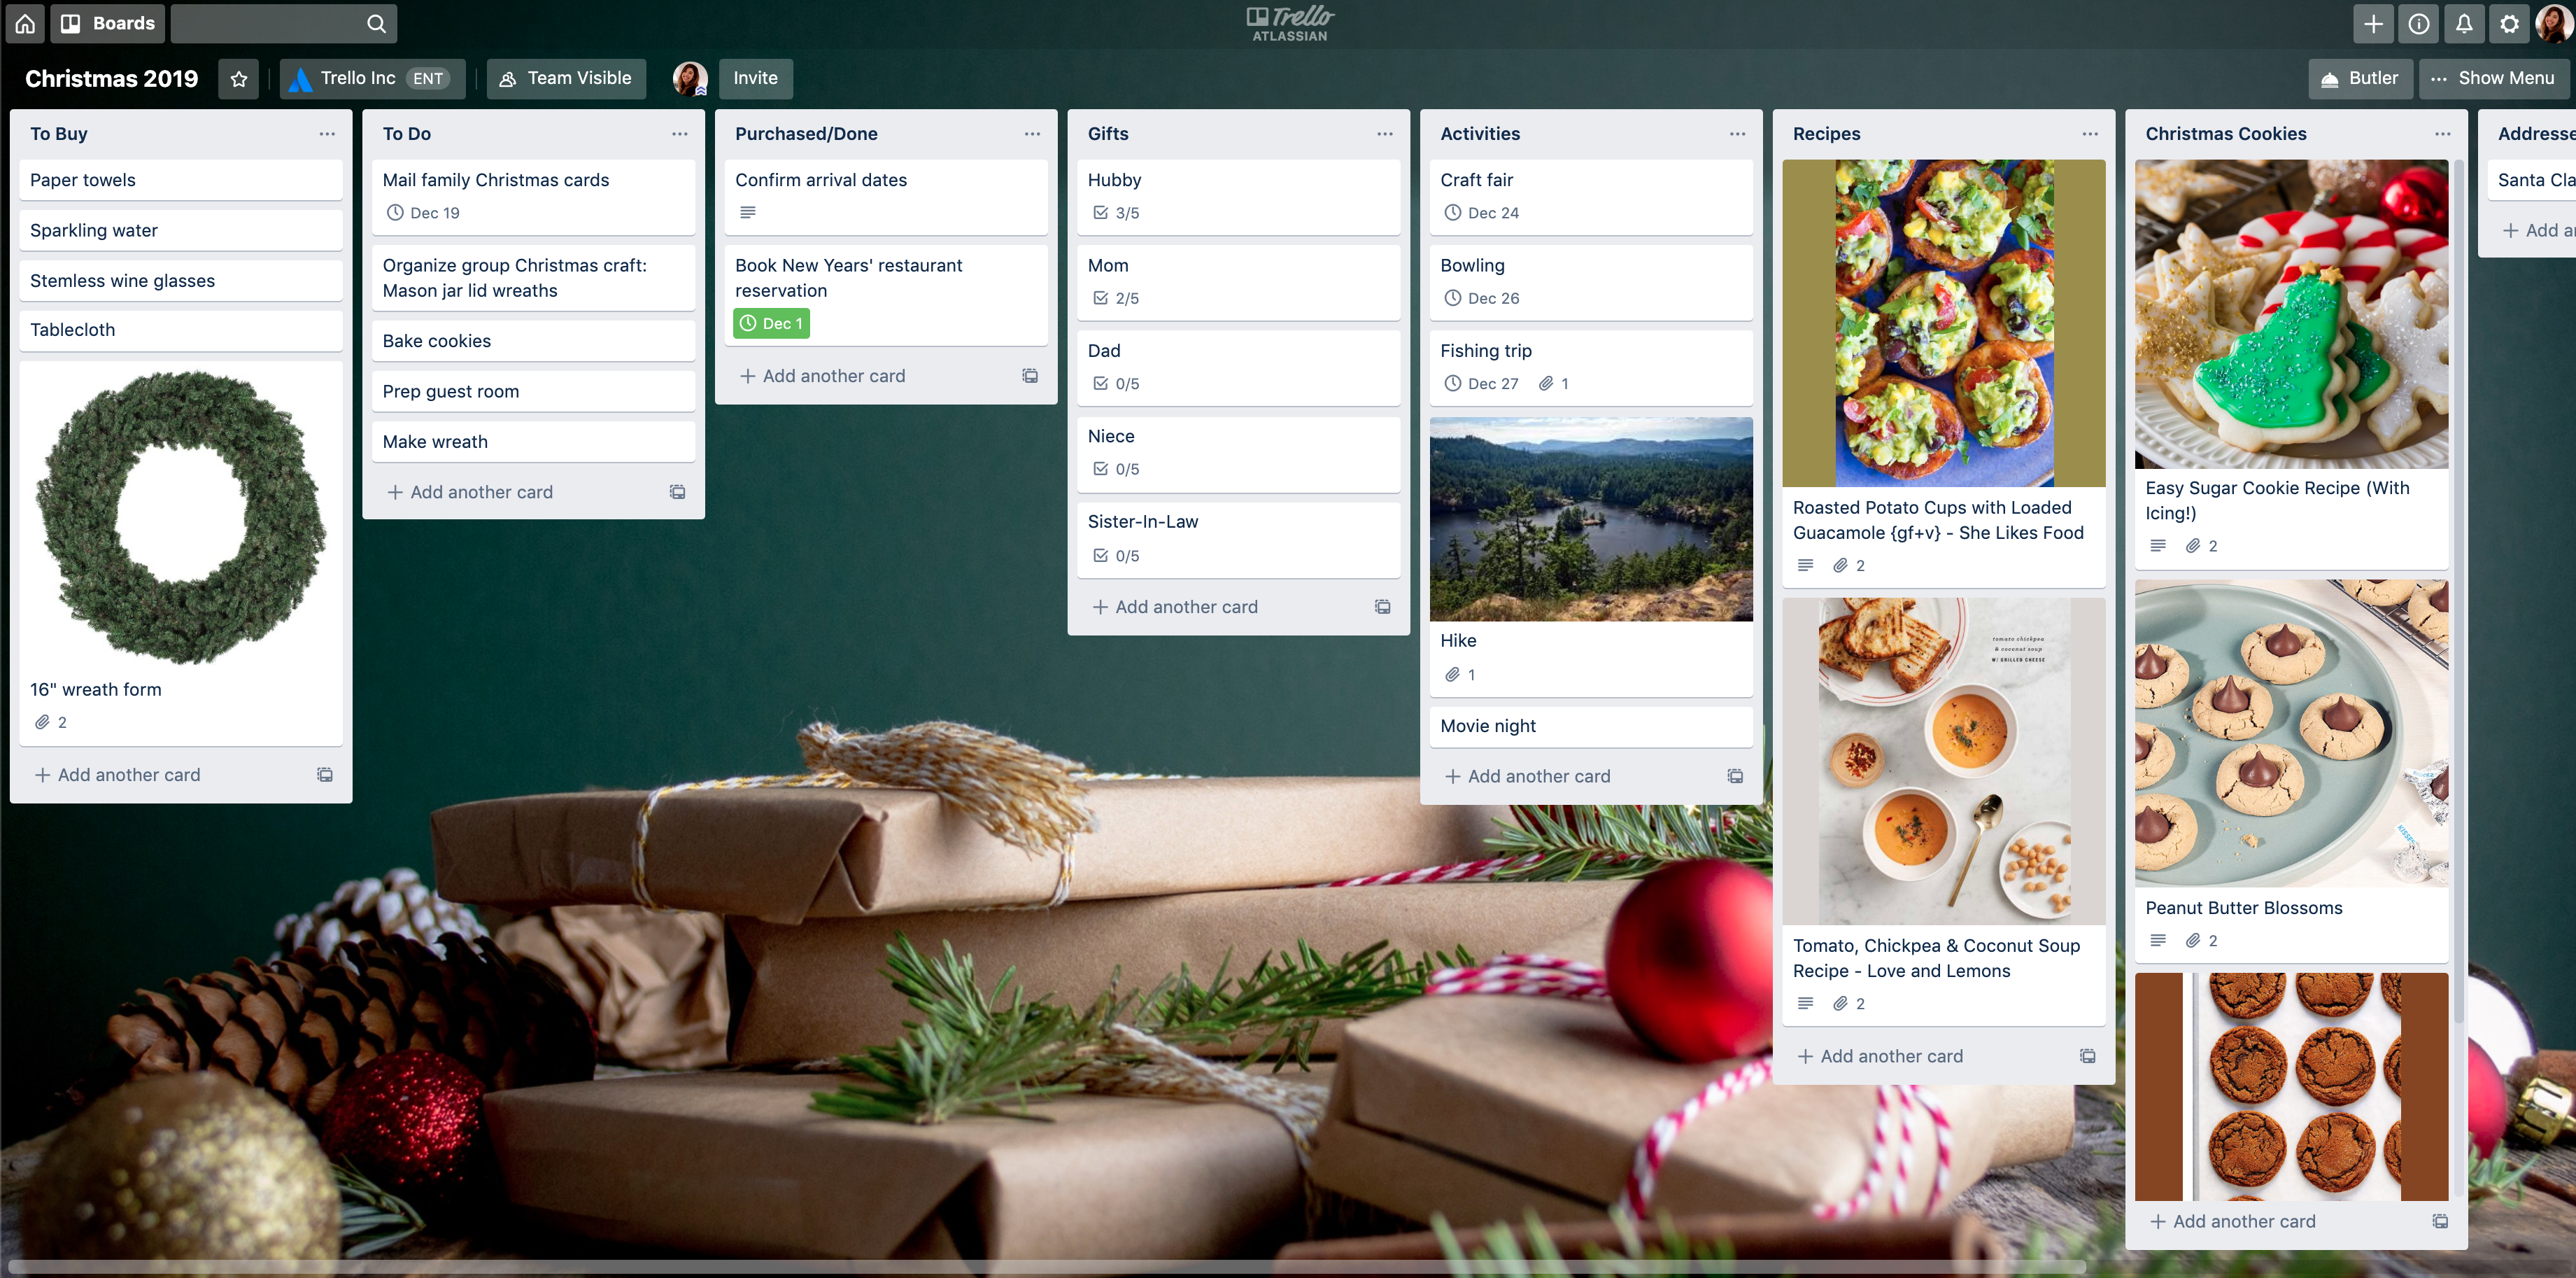 Christmas 2019 Trello Planner Board